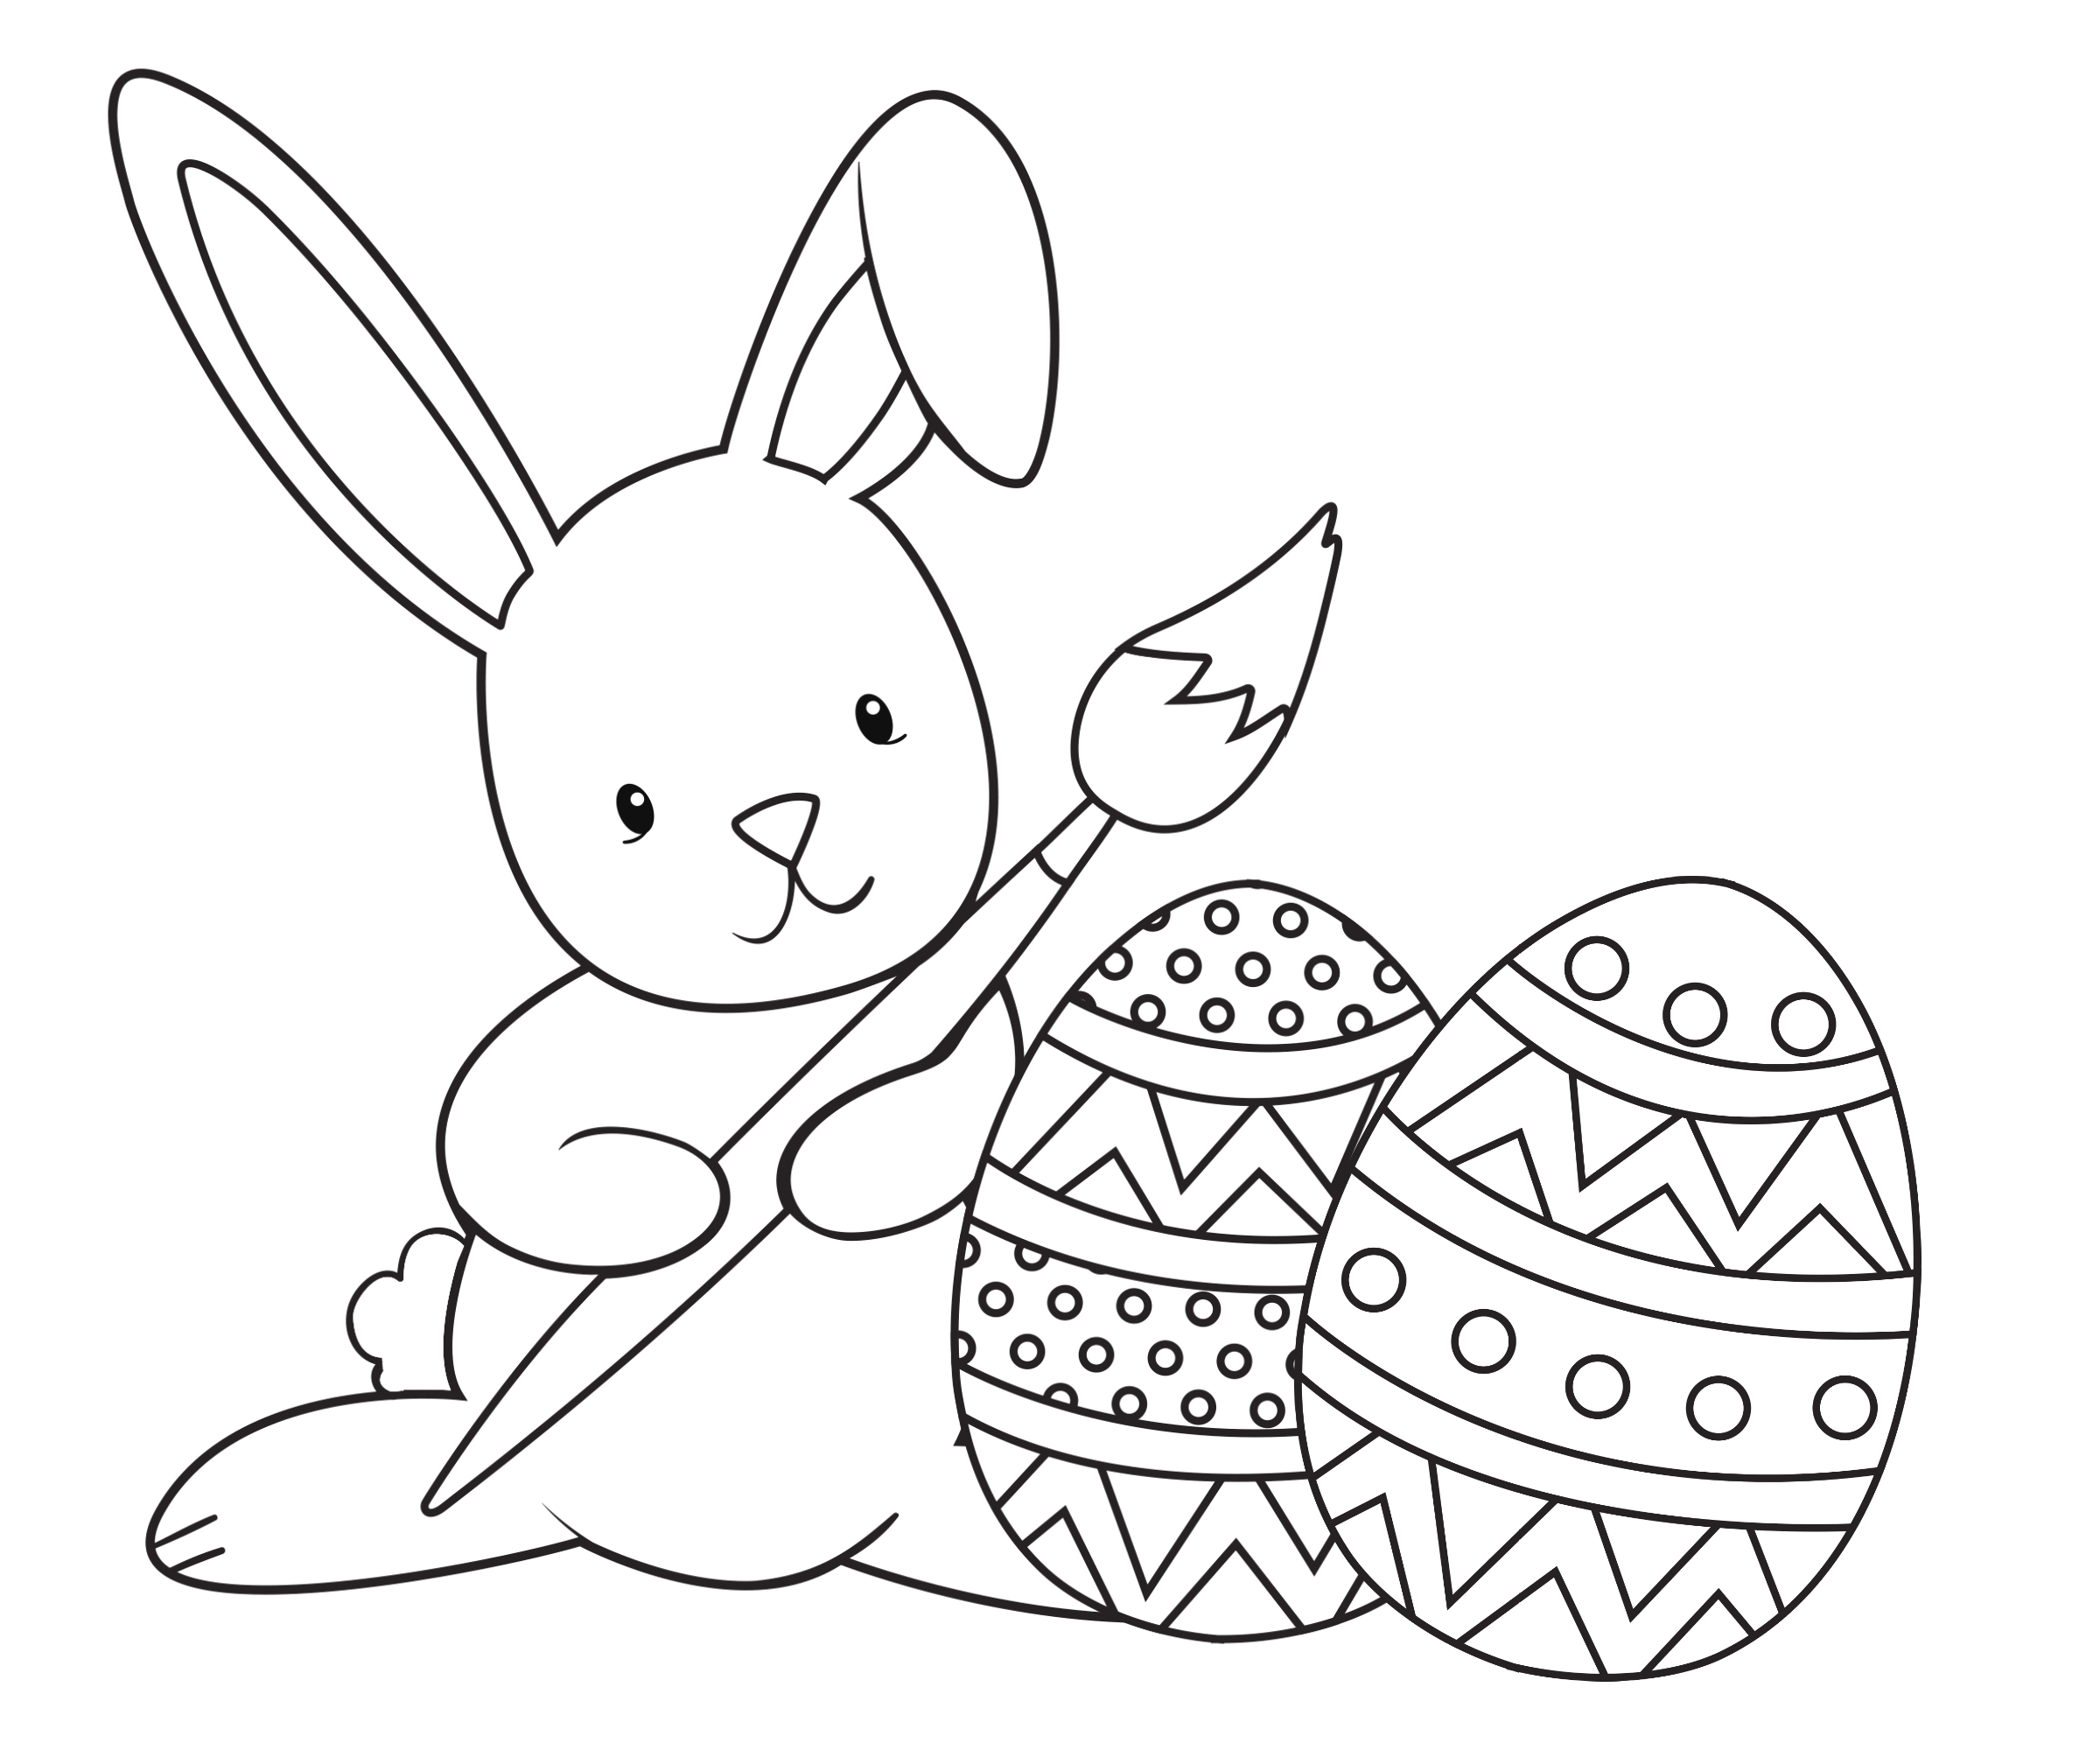 Free Easter Bunny Coloring Pages to Print Easter Bunny Coloring Pages Kidsuki